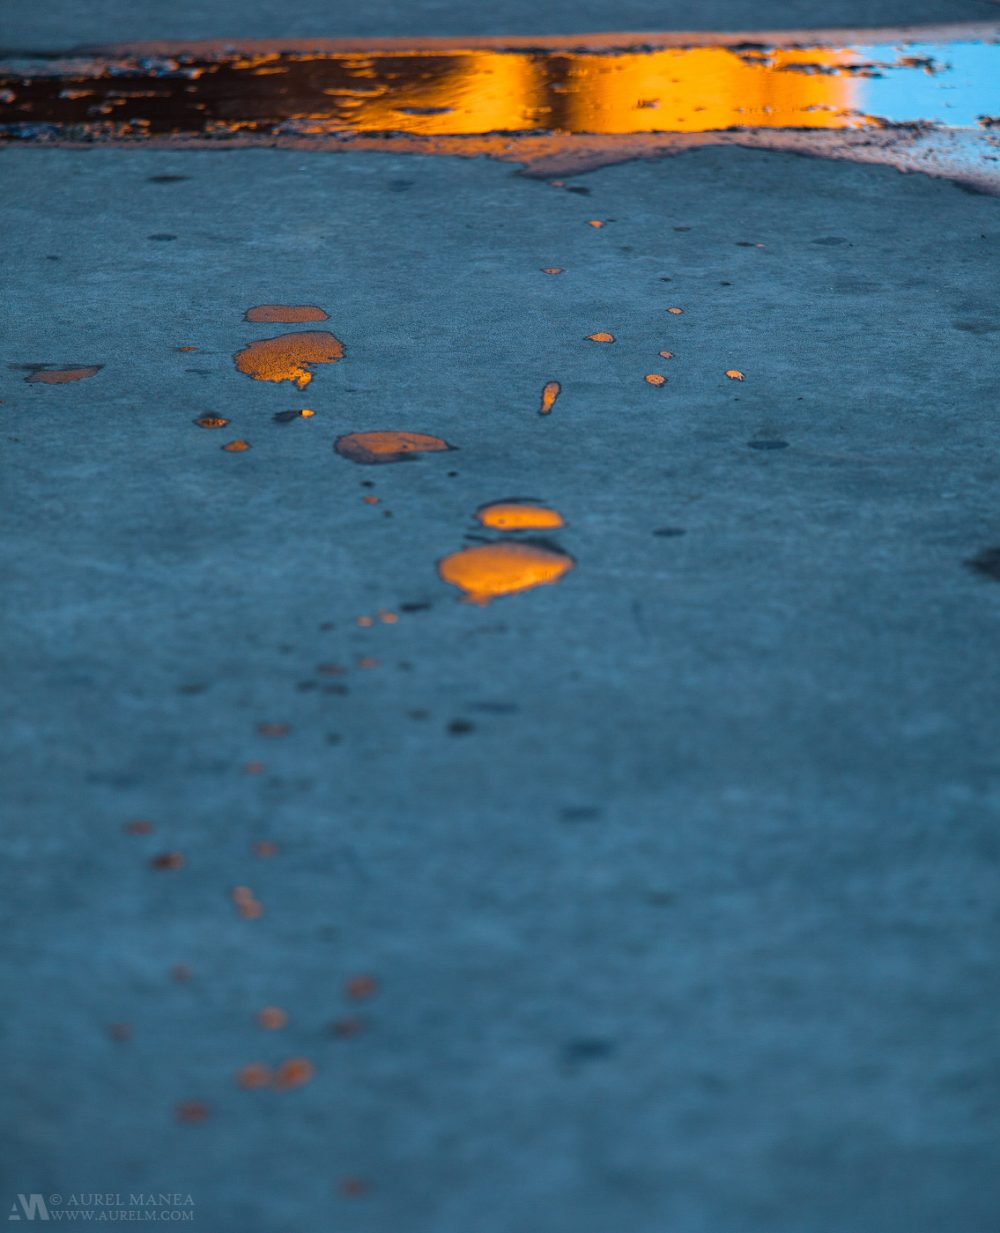 Gallery-Reflections-on-puddle-01